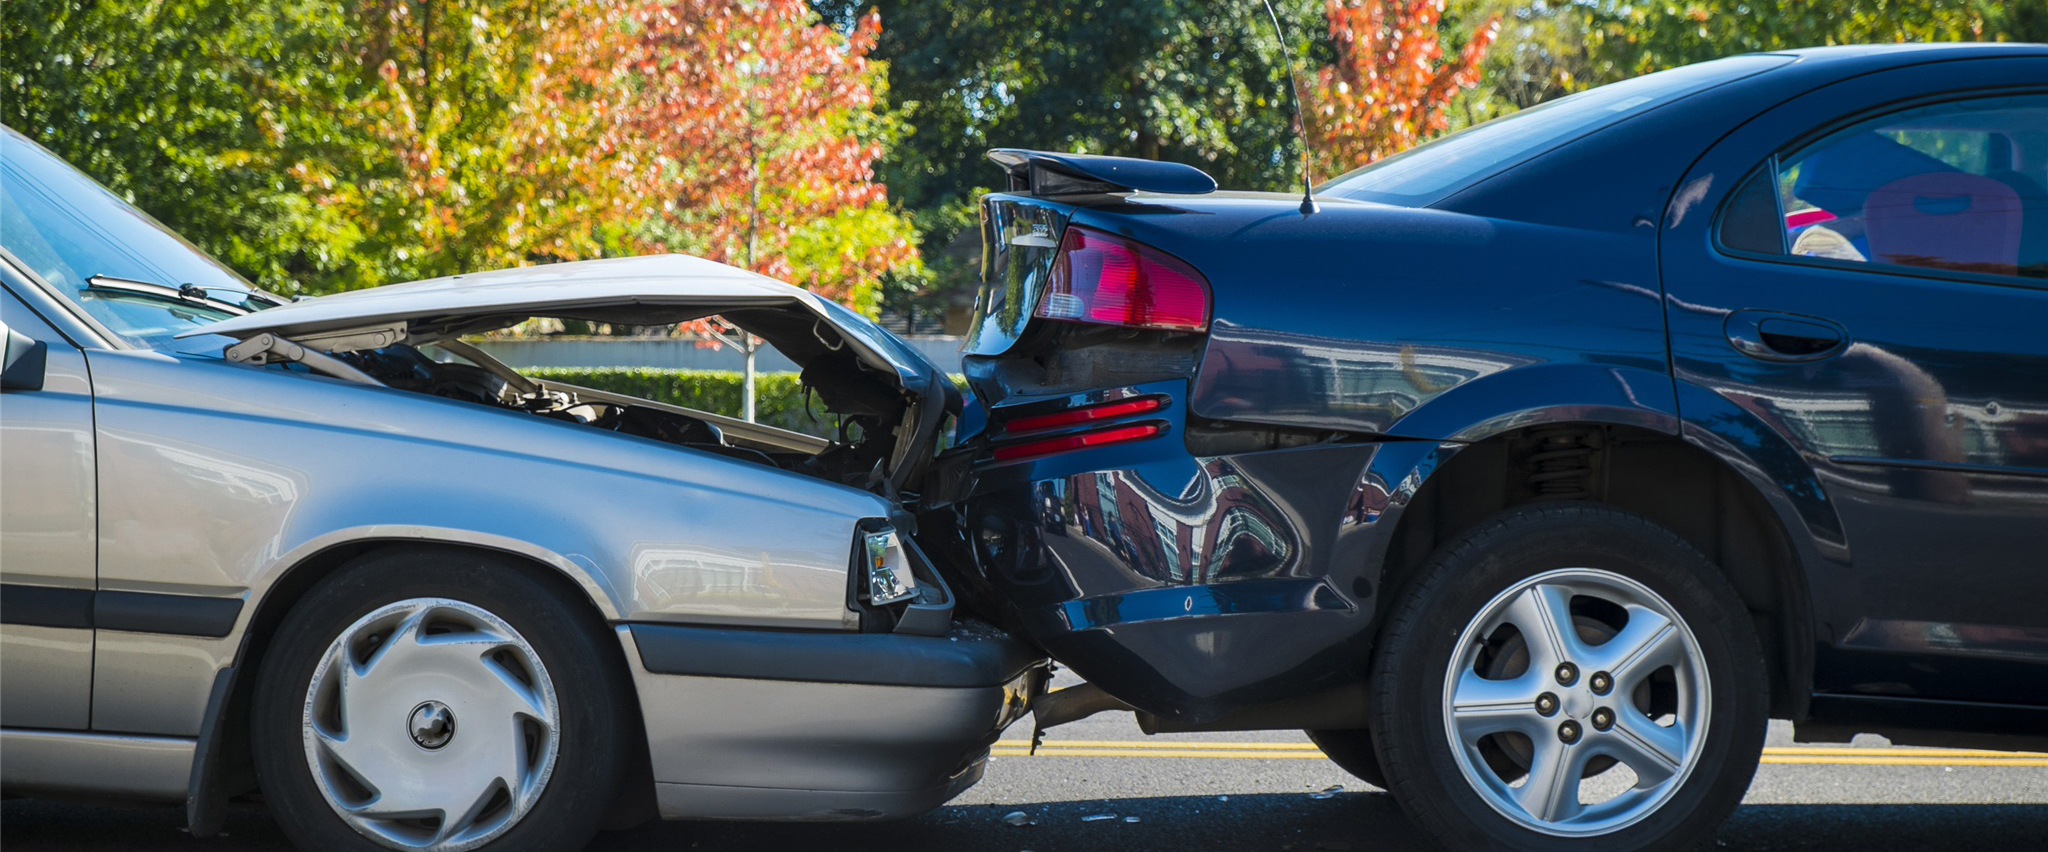 5 Tips for Buying a Car with a Salvage Title